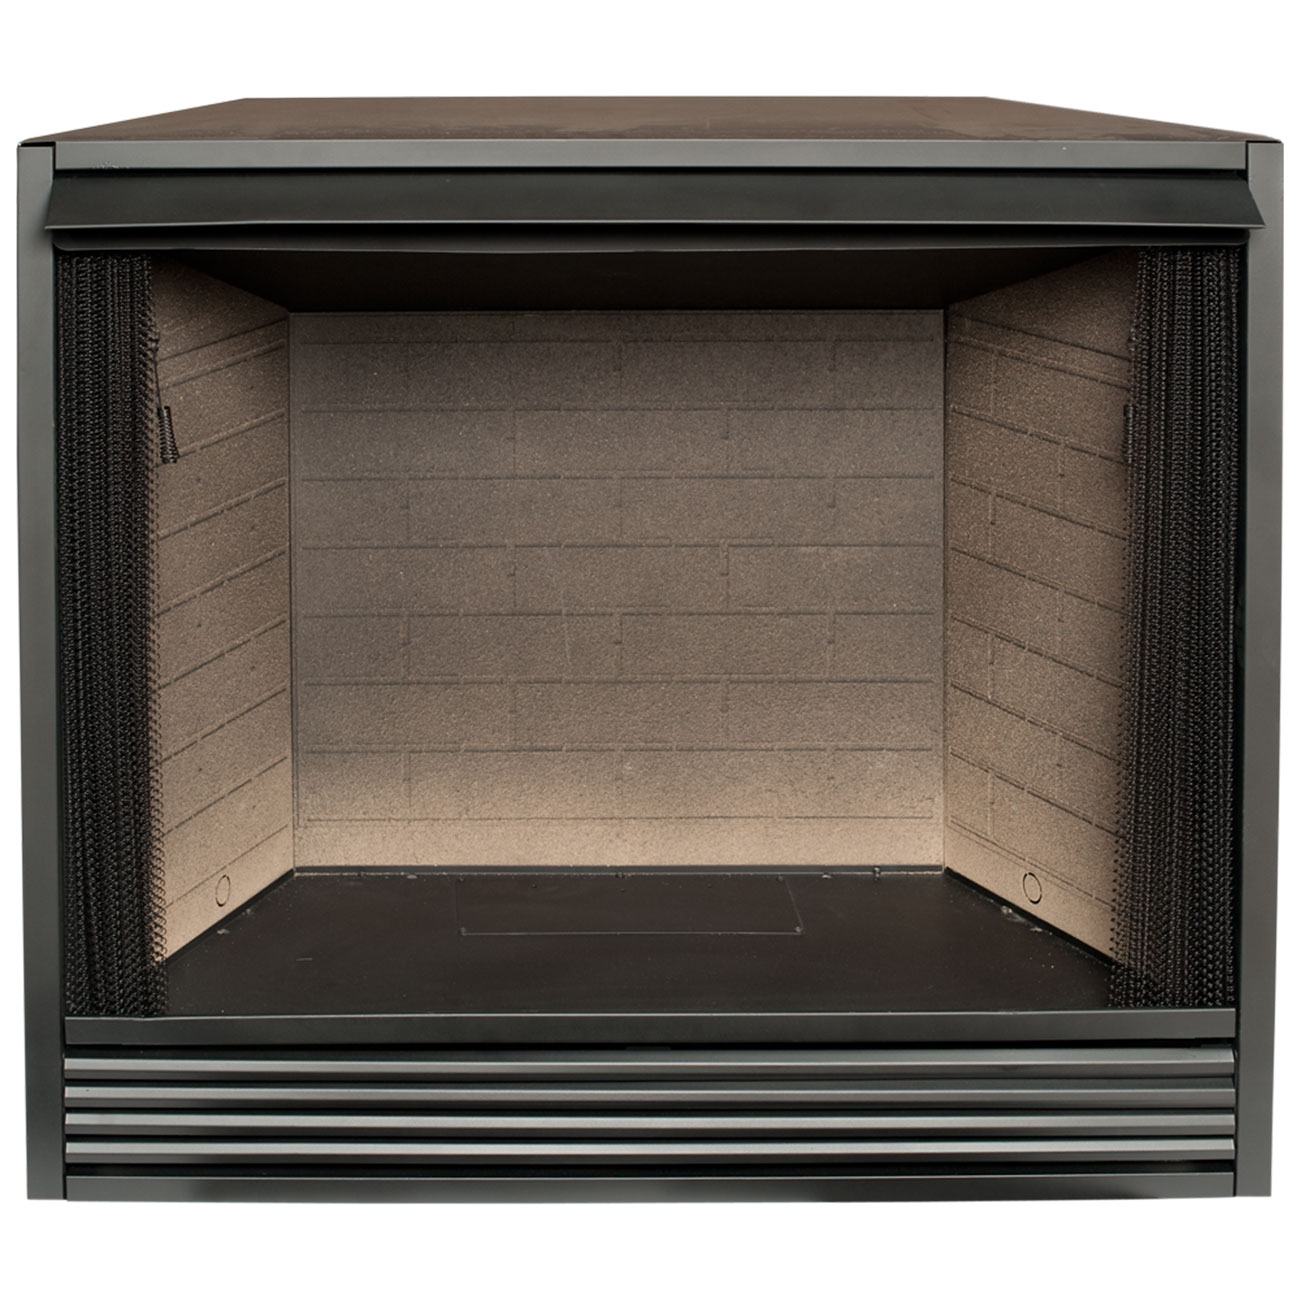 Procom 36 Ventless Gas Firebox Insert Procom Heating